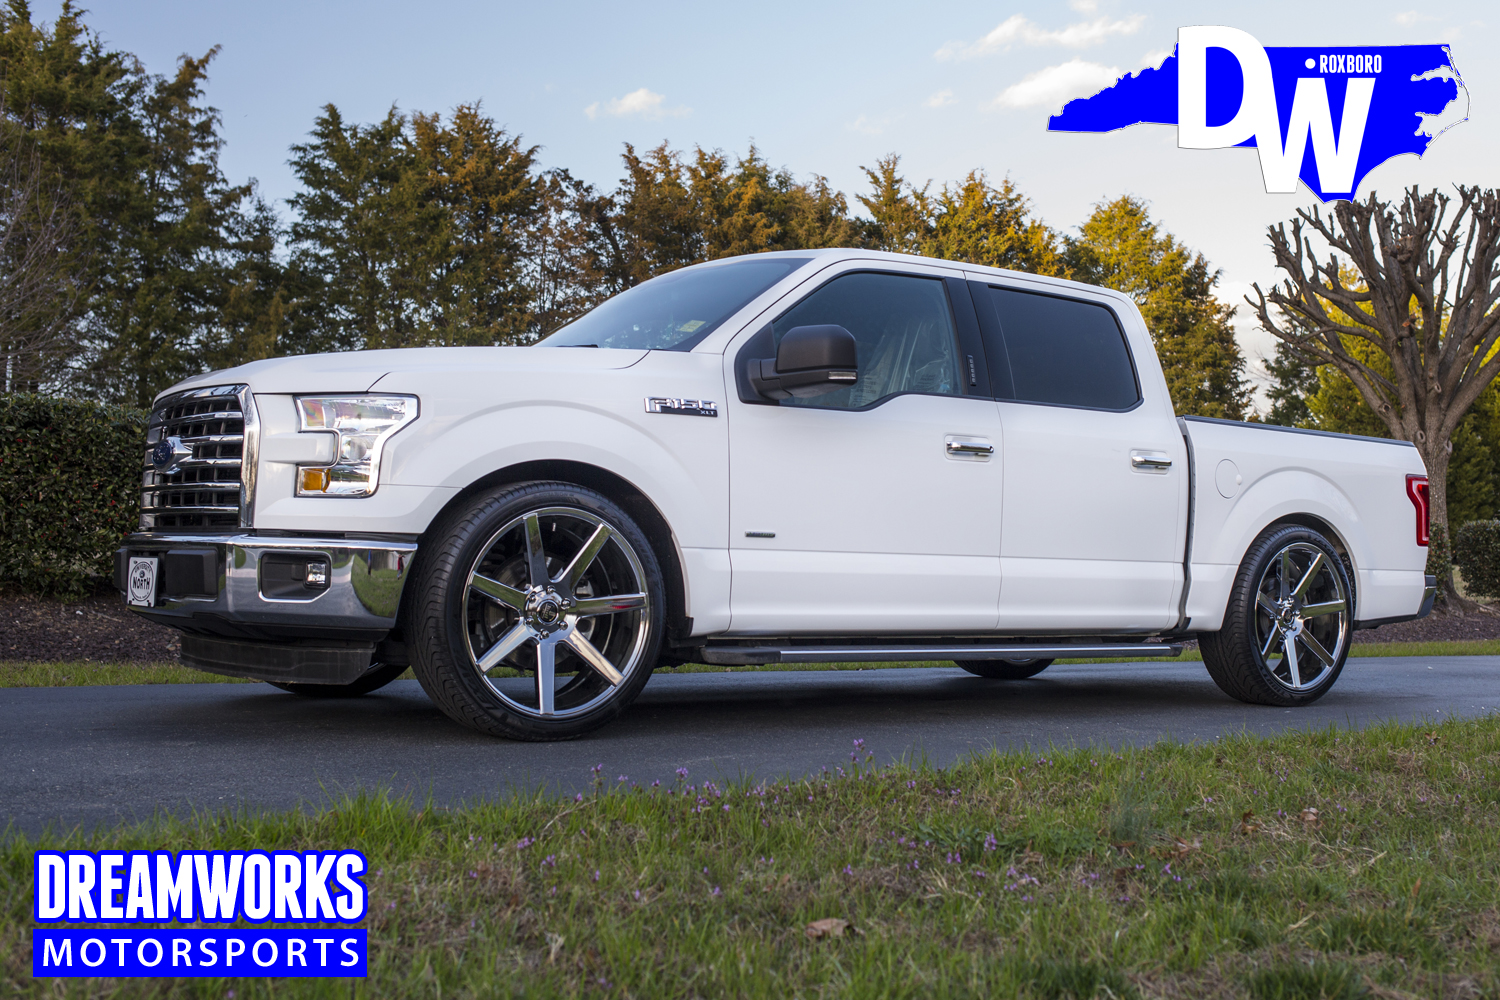 2017-lowered-Ford-F150-by-dreamworks-motorsports-1.jpg